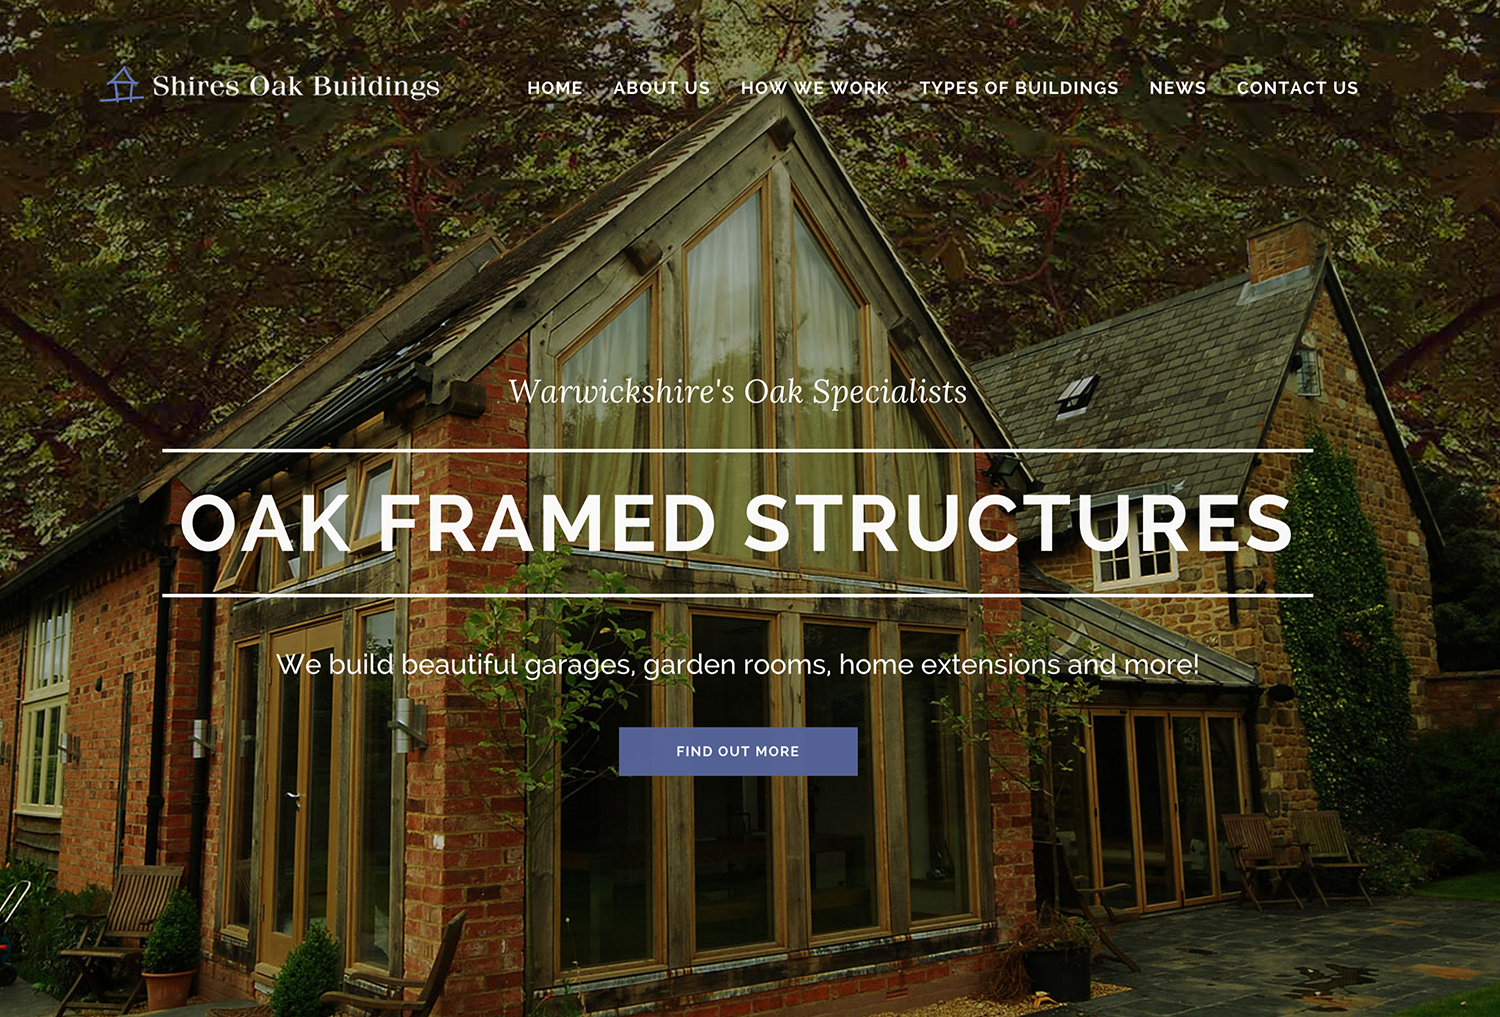 The new Shires Oak Buildings website